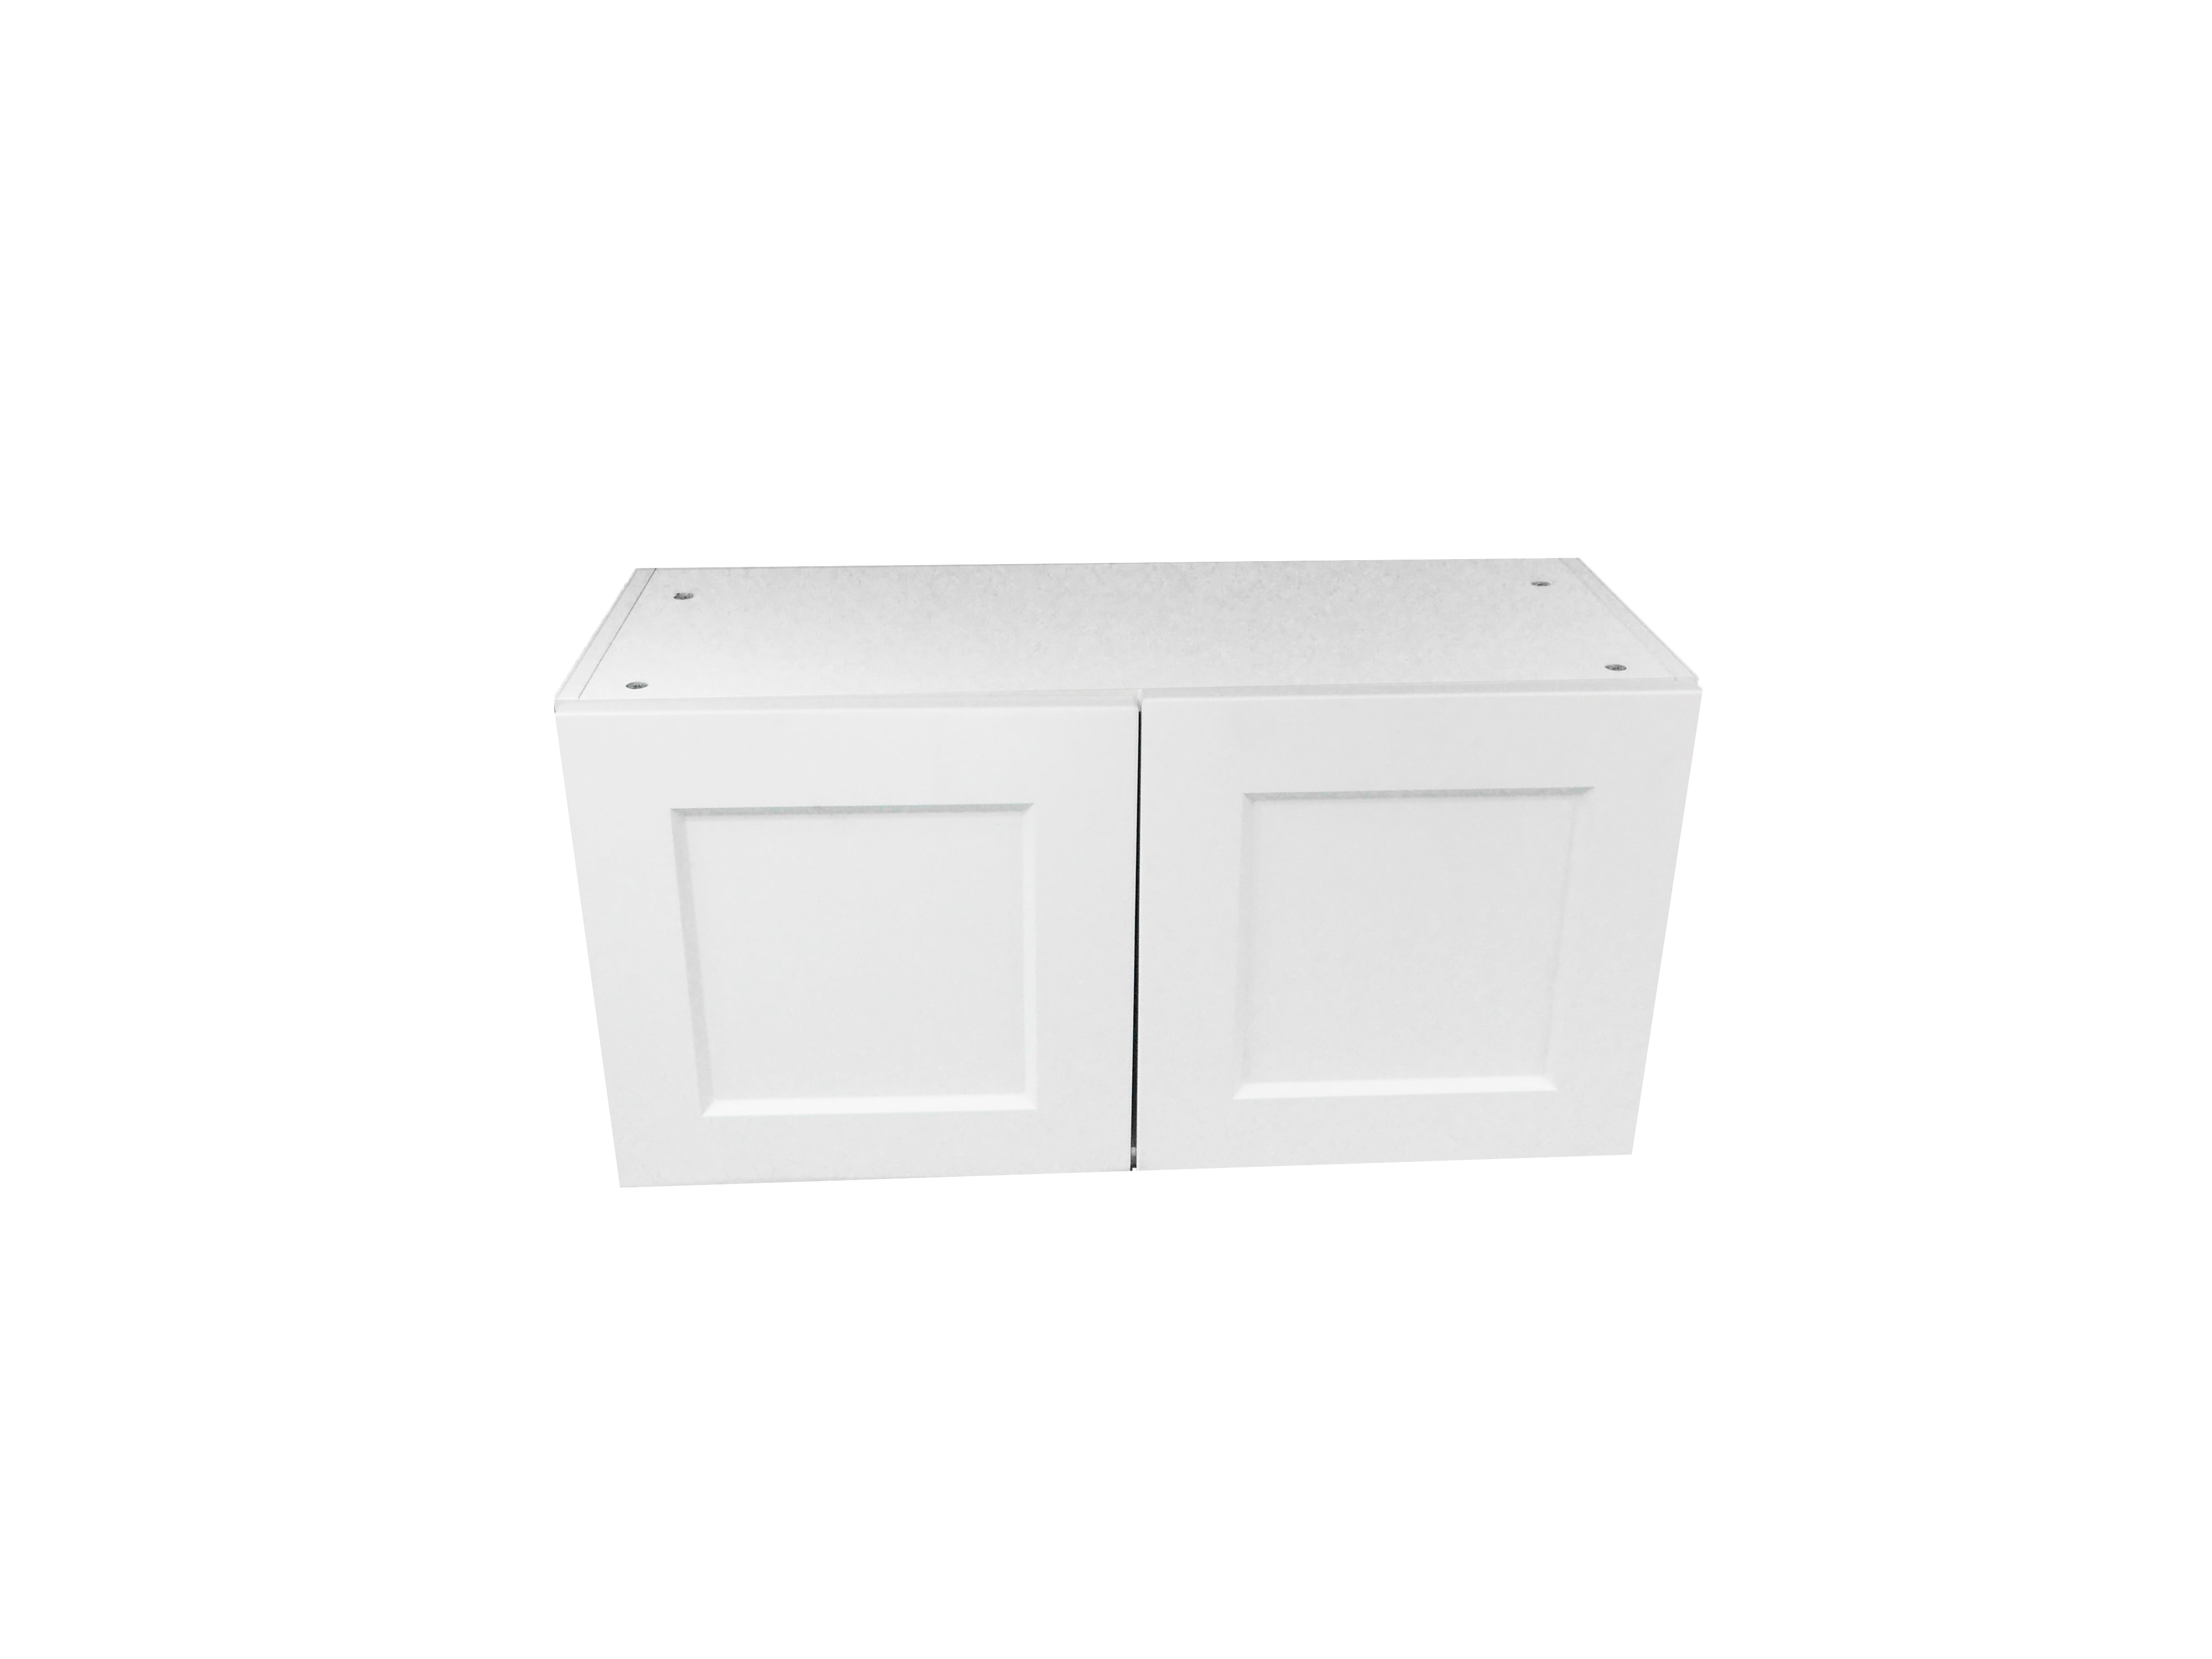 Appliance Wall Cabinet with 2 Doors / Wistler White / Flat Panel White / 24x15 Whistler White 0